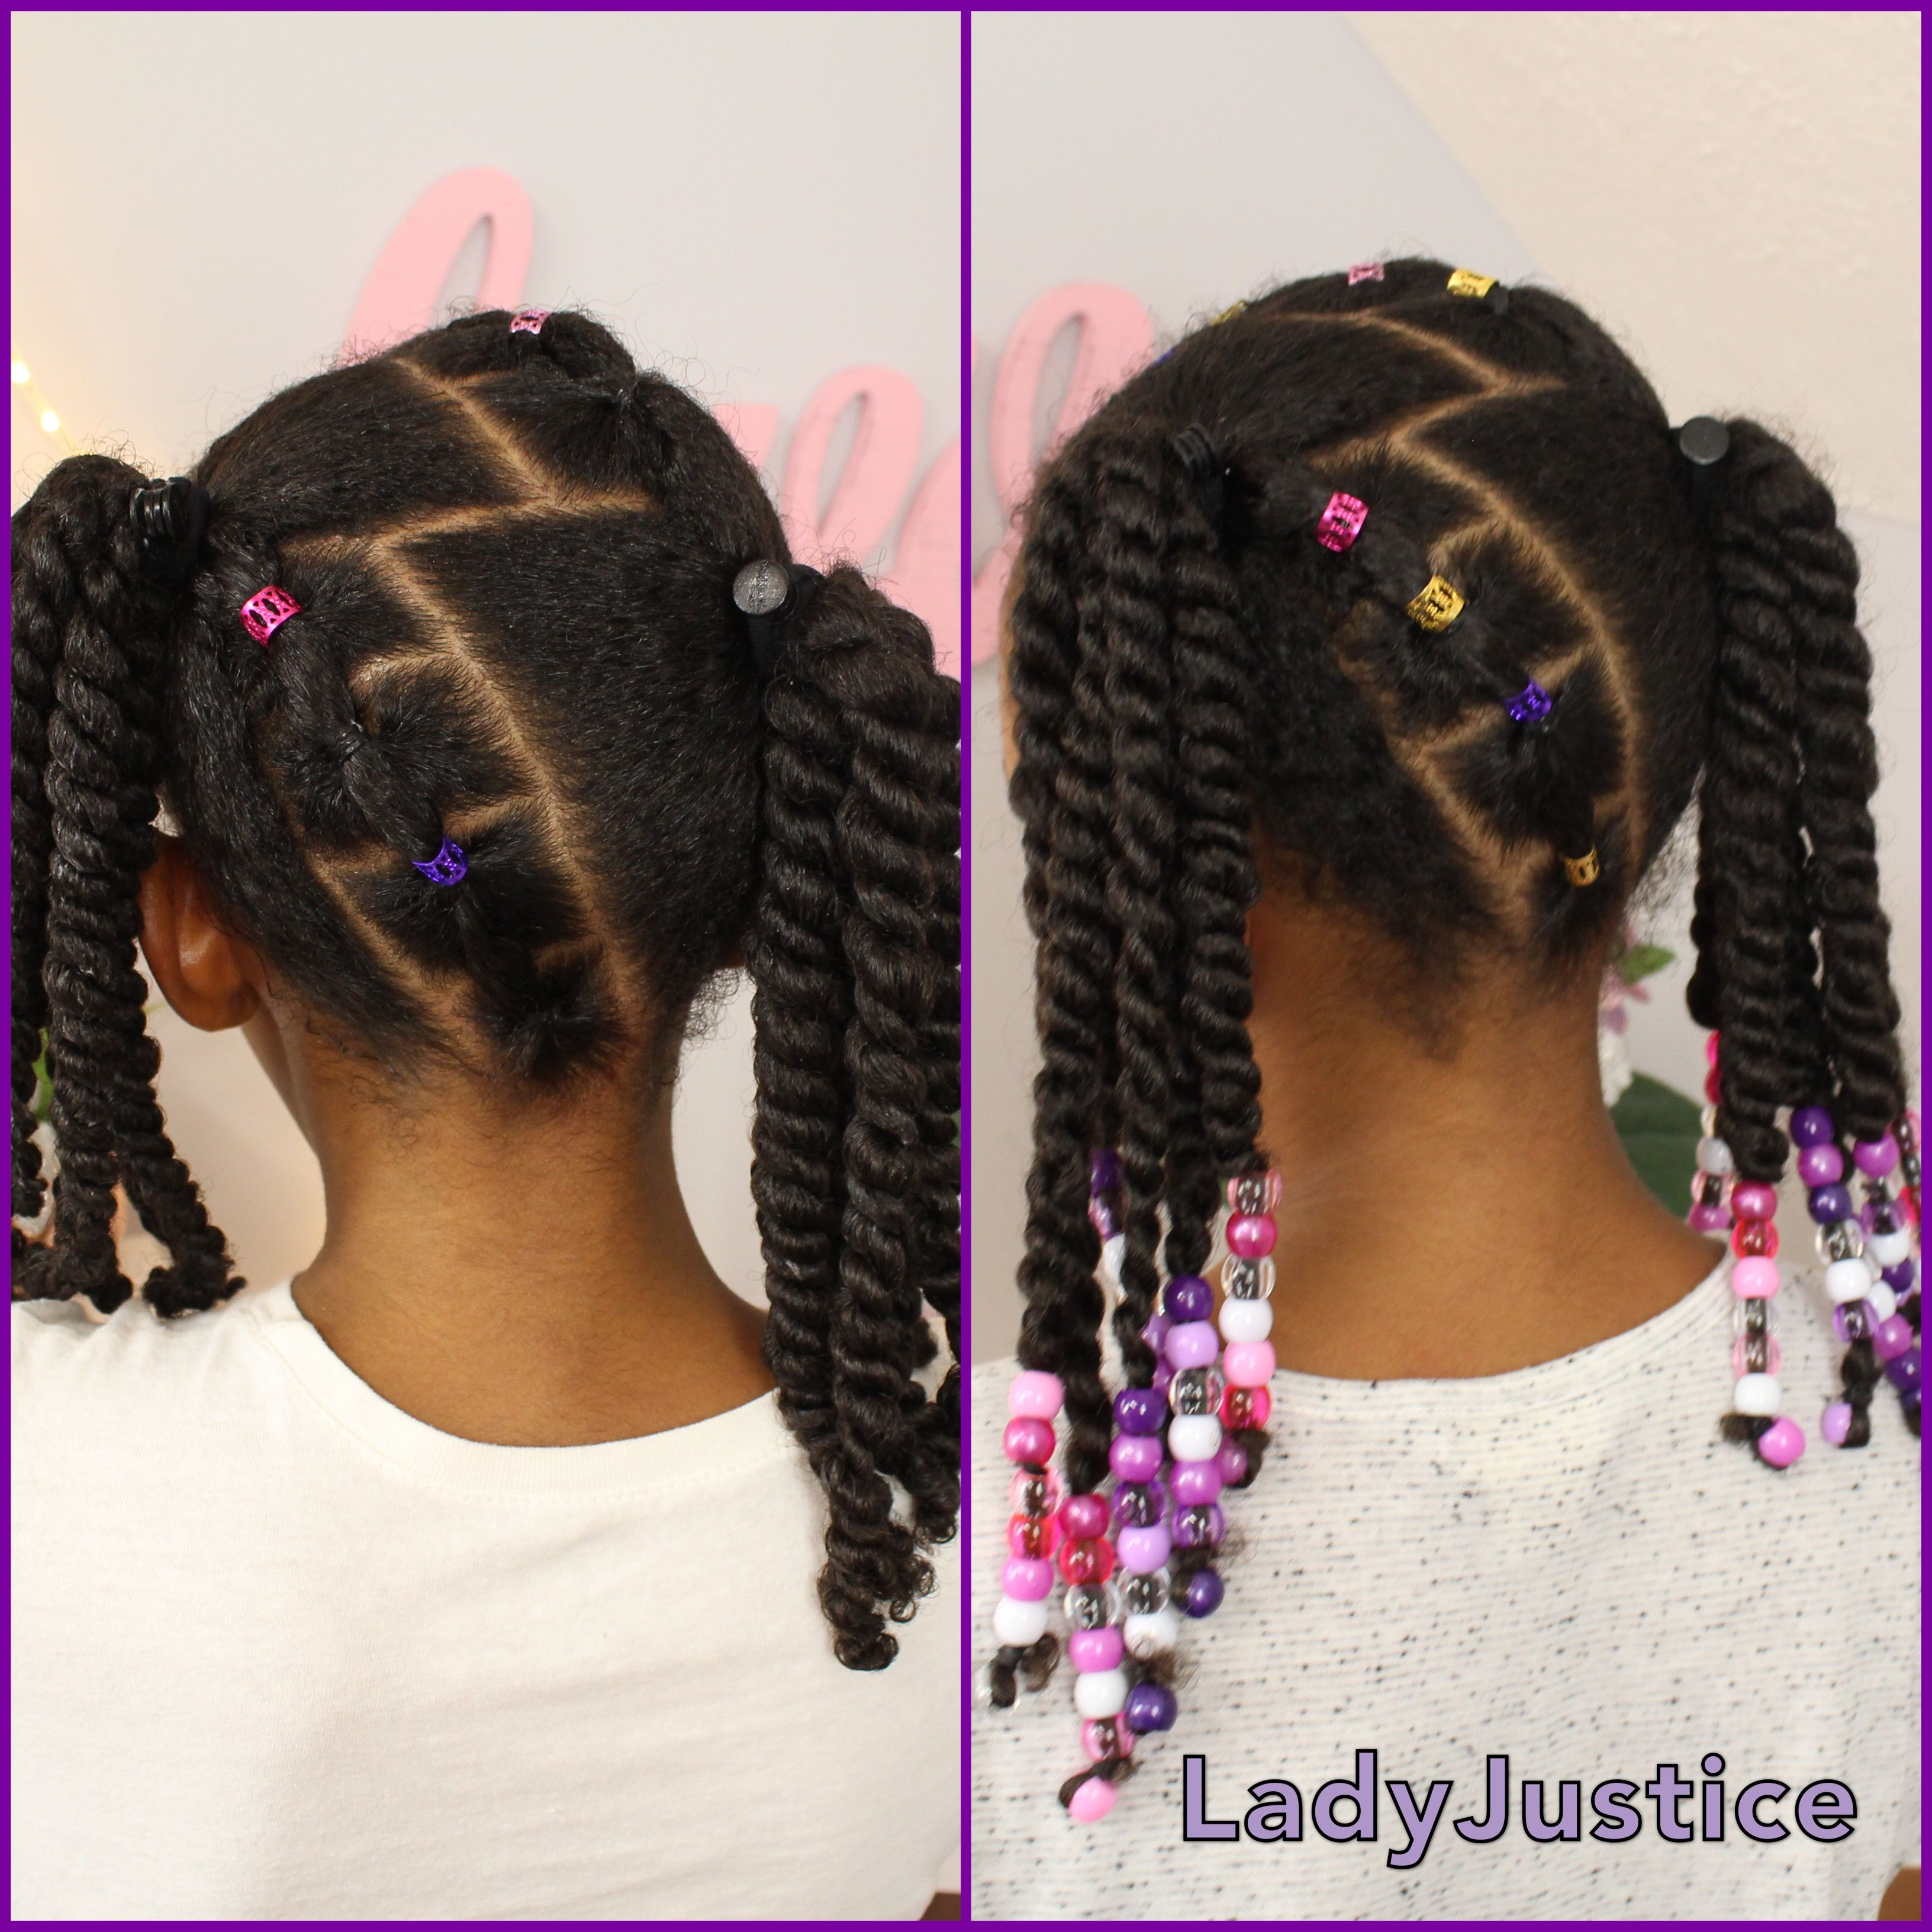 2 ponytails and 2 strand twists full tutorial linked | girls